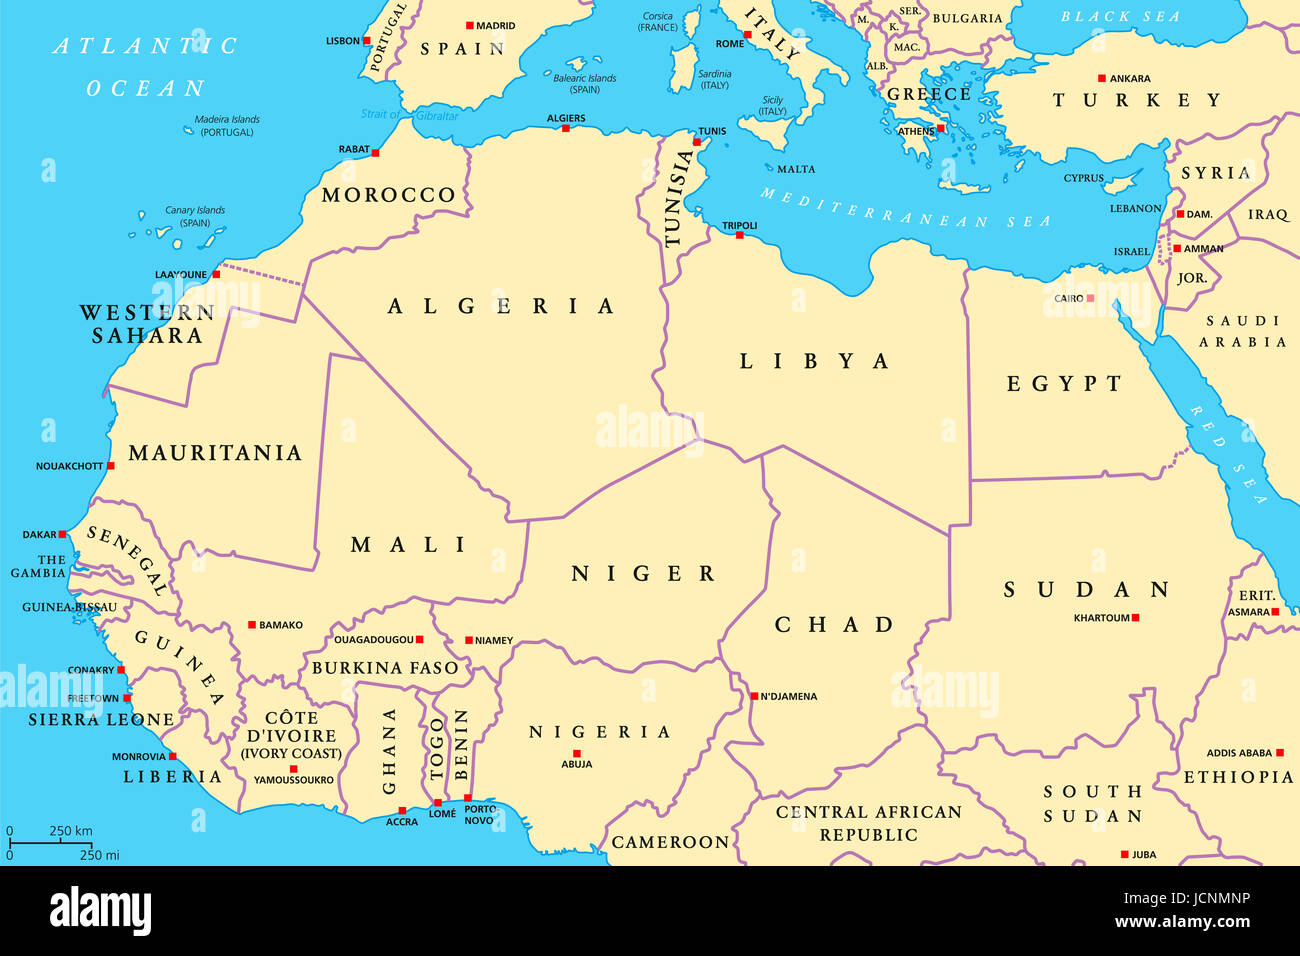 Map Of Africa With Countries And Capitals.North Africa Countries Political Map With Capitals And Borders From